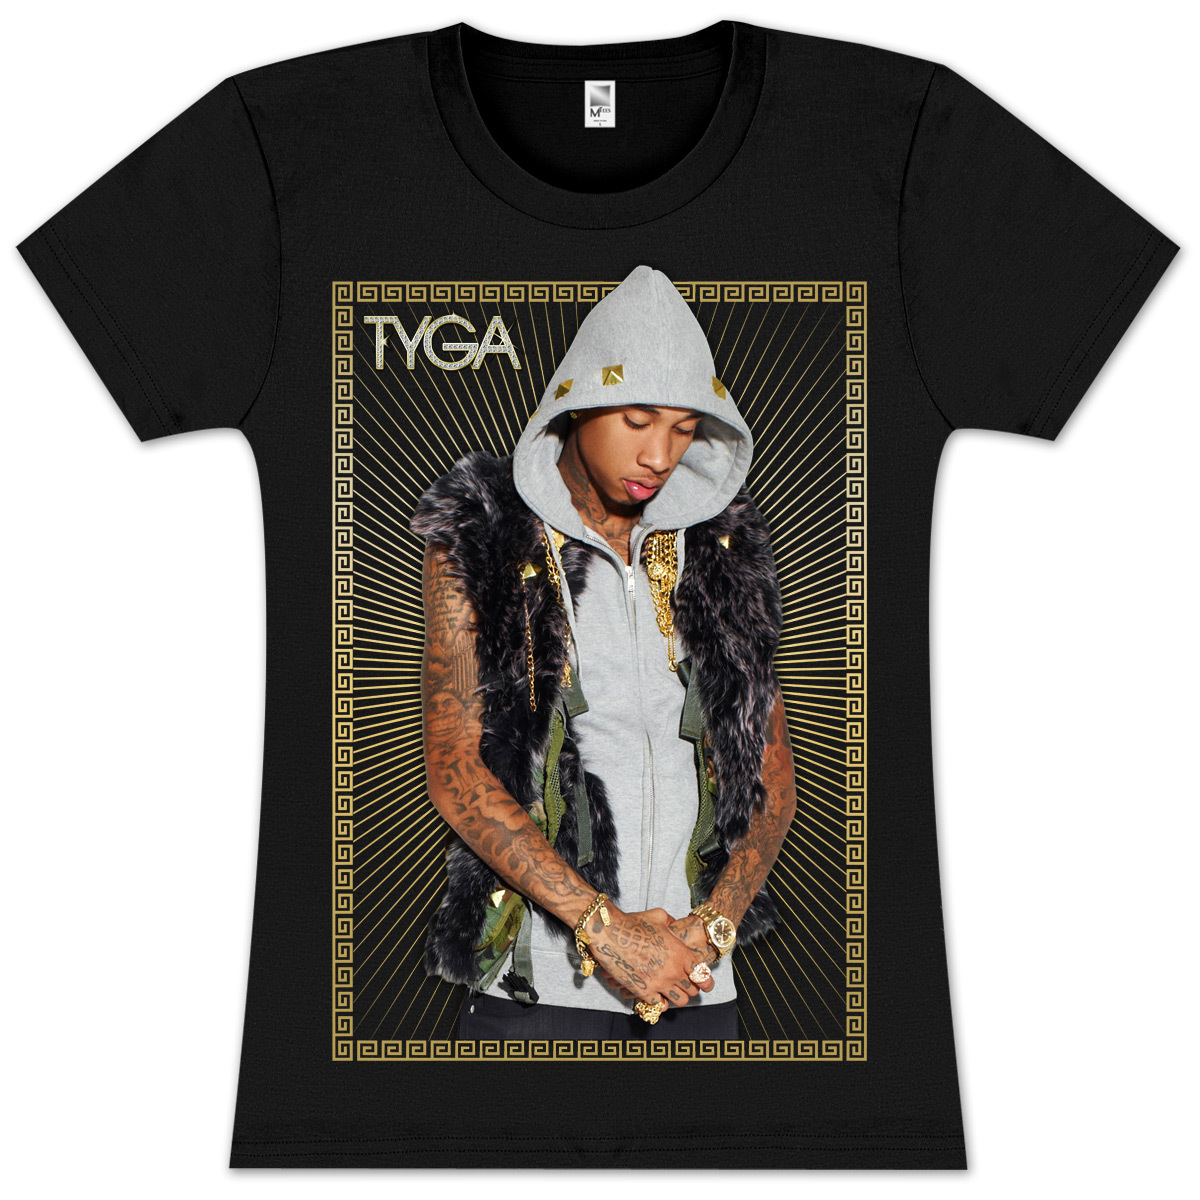 TYGA Gold JR Vest T-Shirt